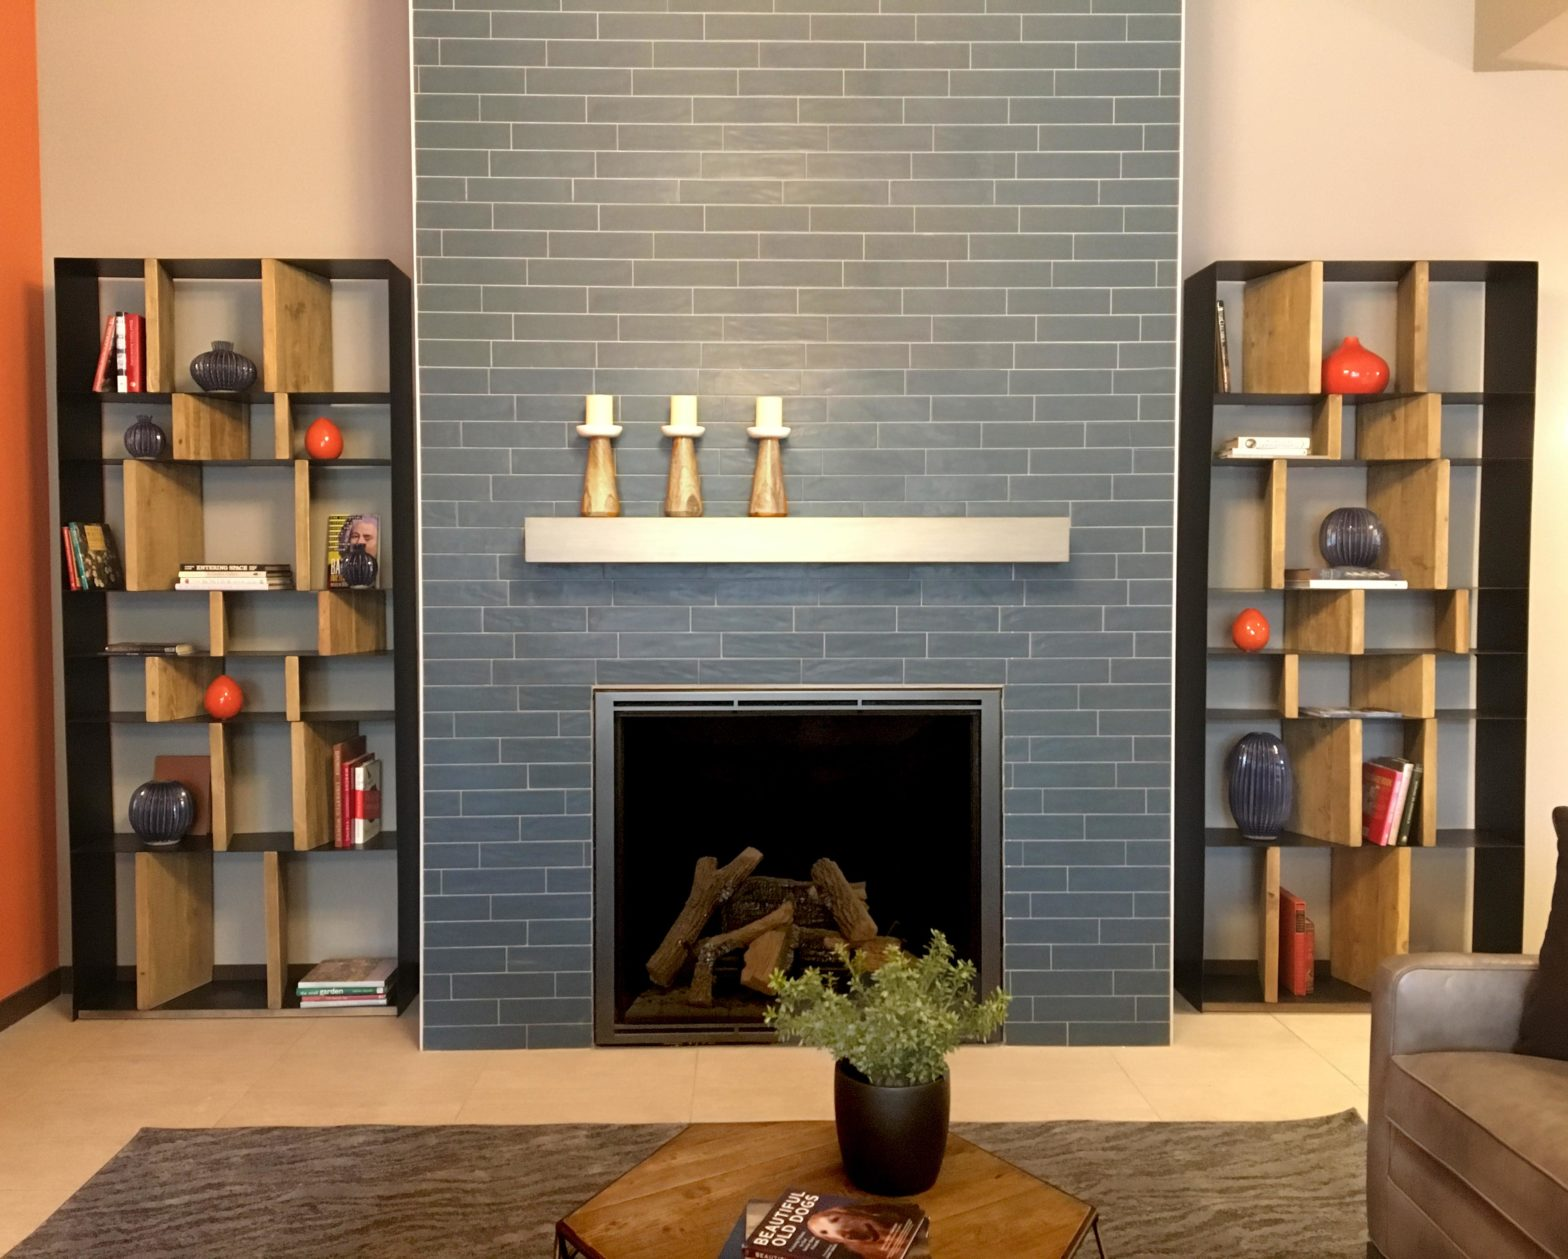 Commercial Rec Center Fireplace With Blue Subway Tile